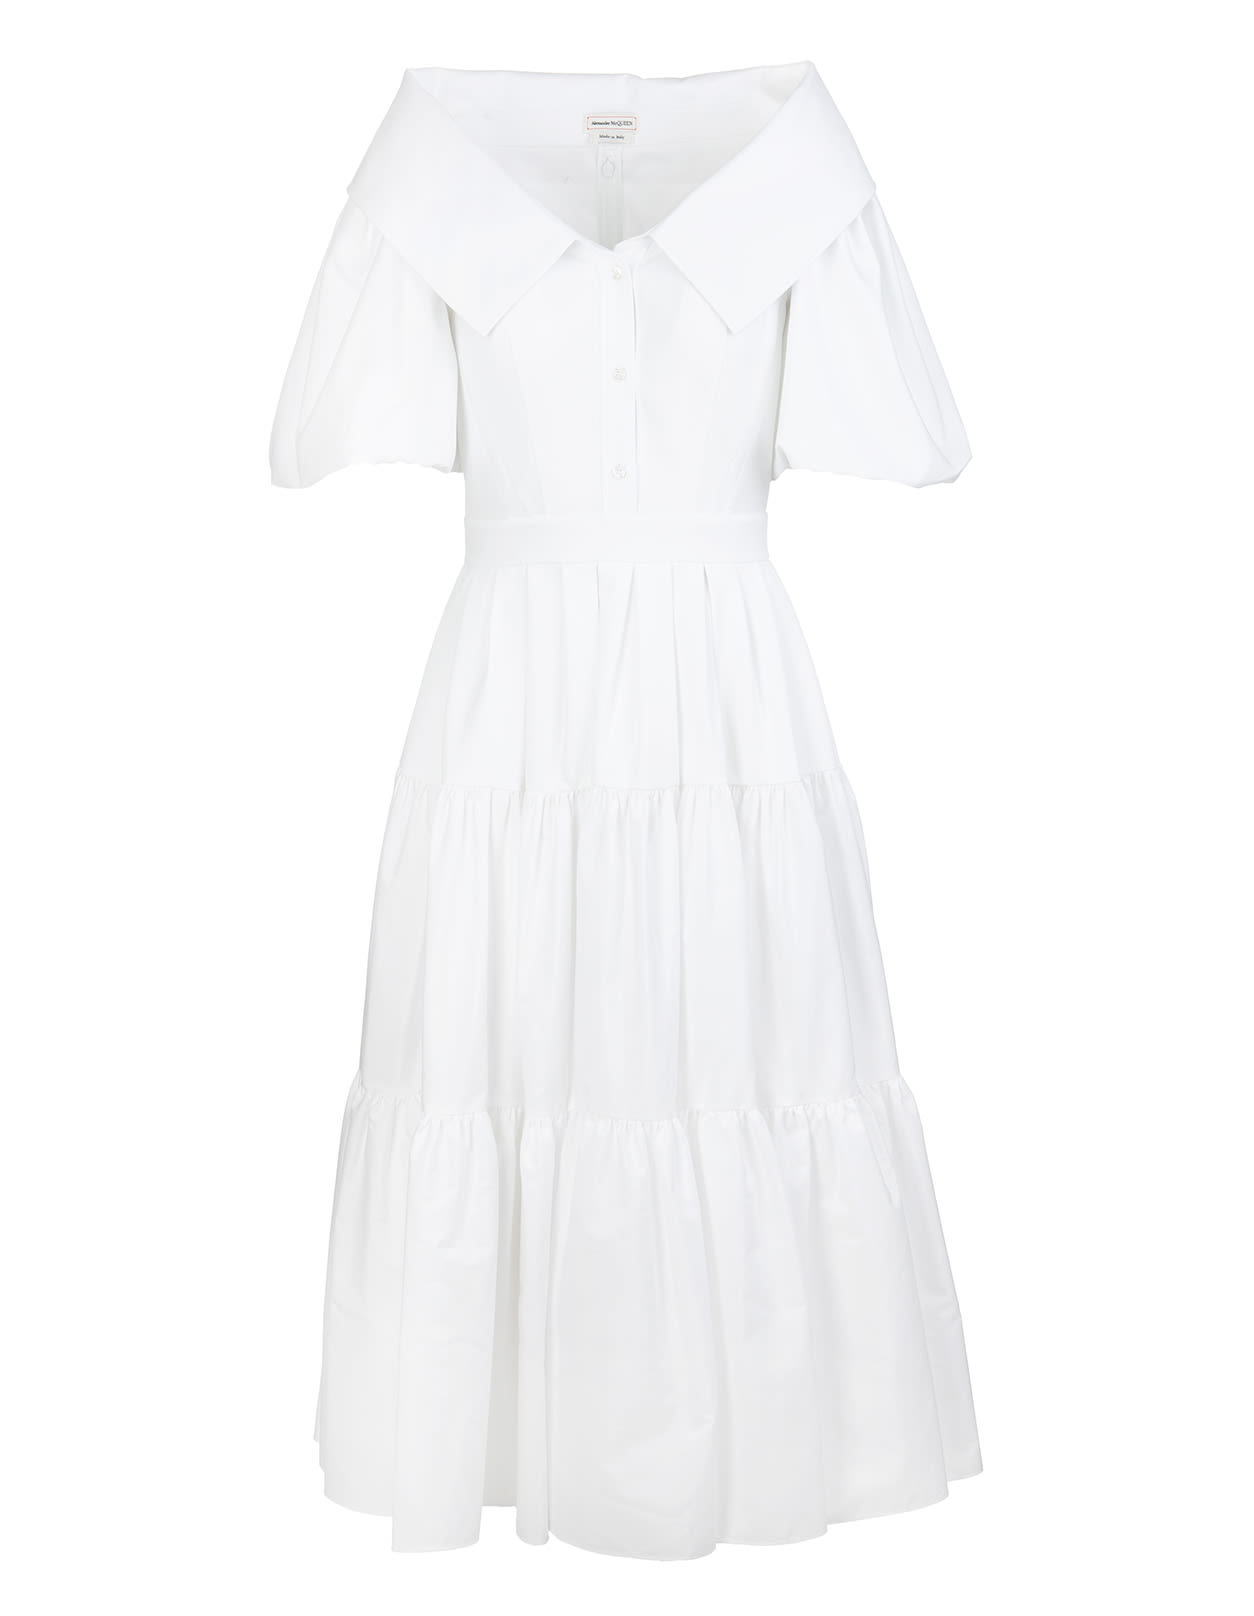 Alexander Mcqueen Cottons WHITE POPLIN MIDI DRESS WITH OPEN COLLAR